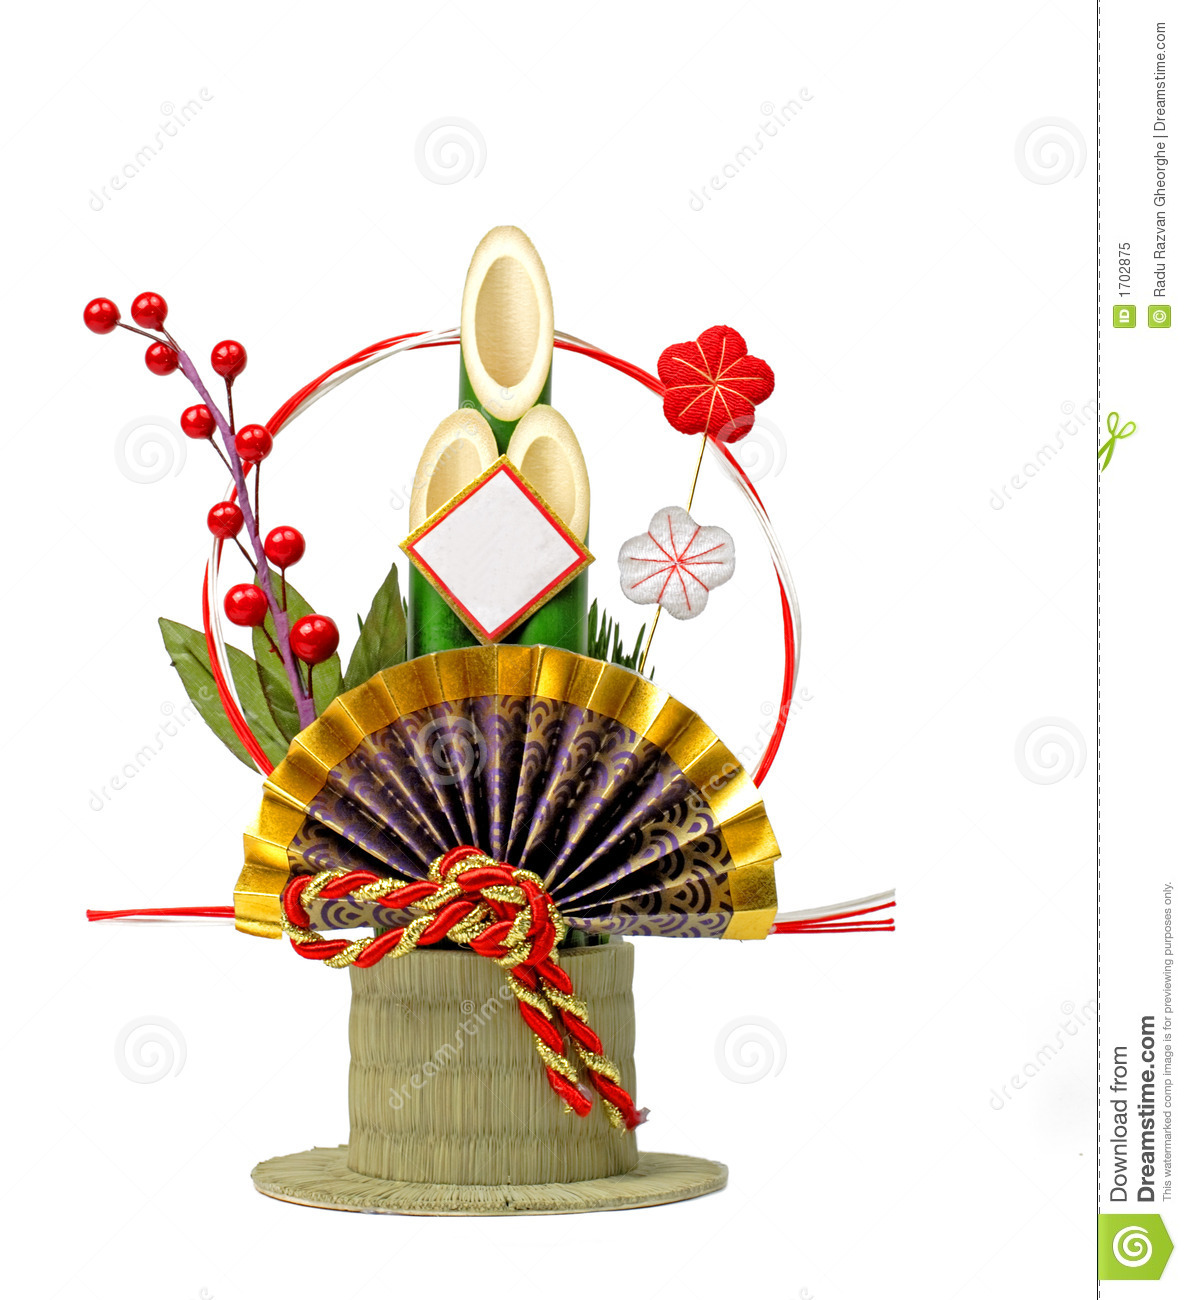 Japanese new year decoration royalty free stock photo image 1702875 for Decoration image